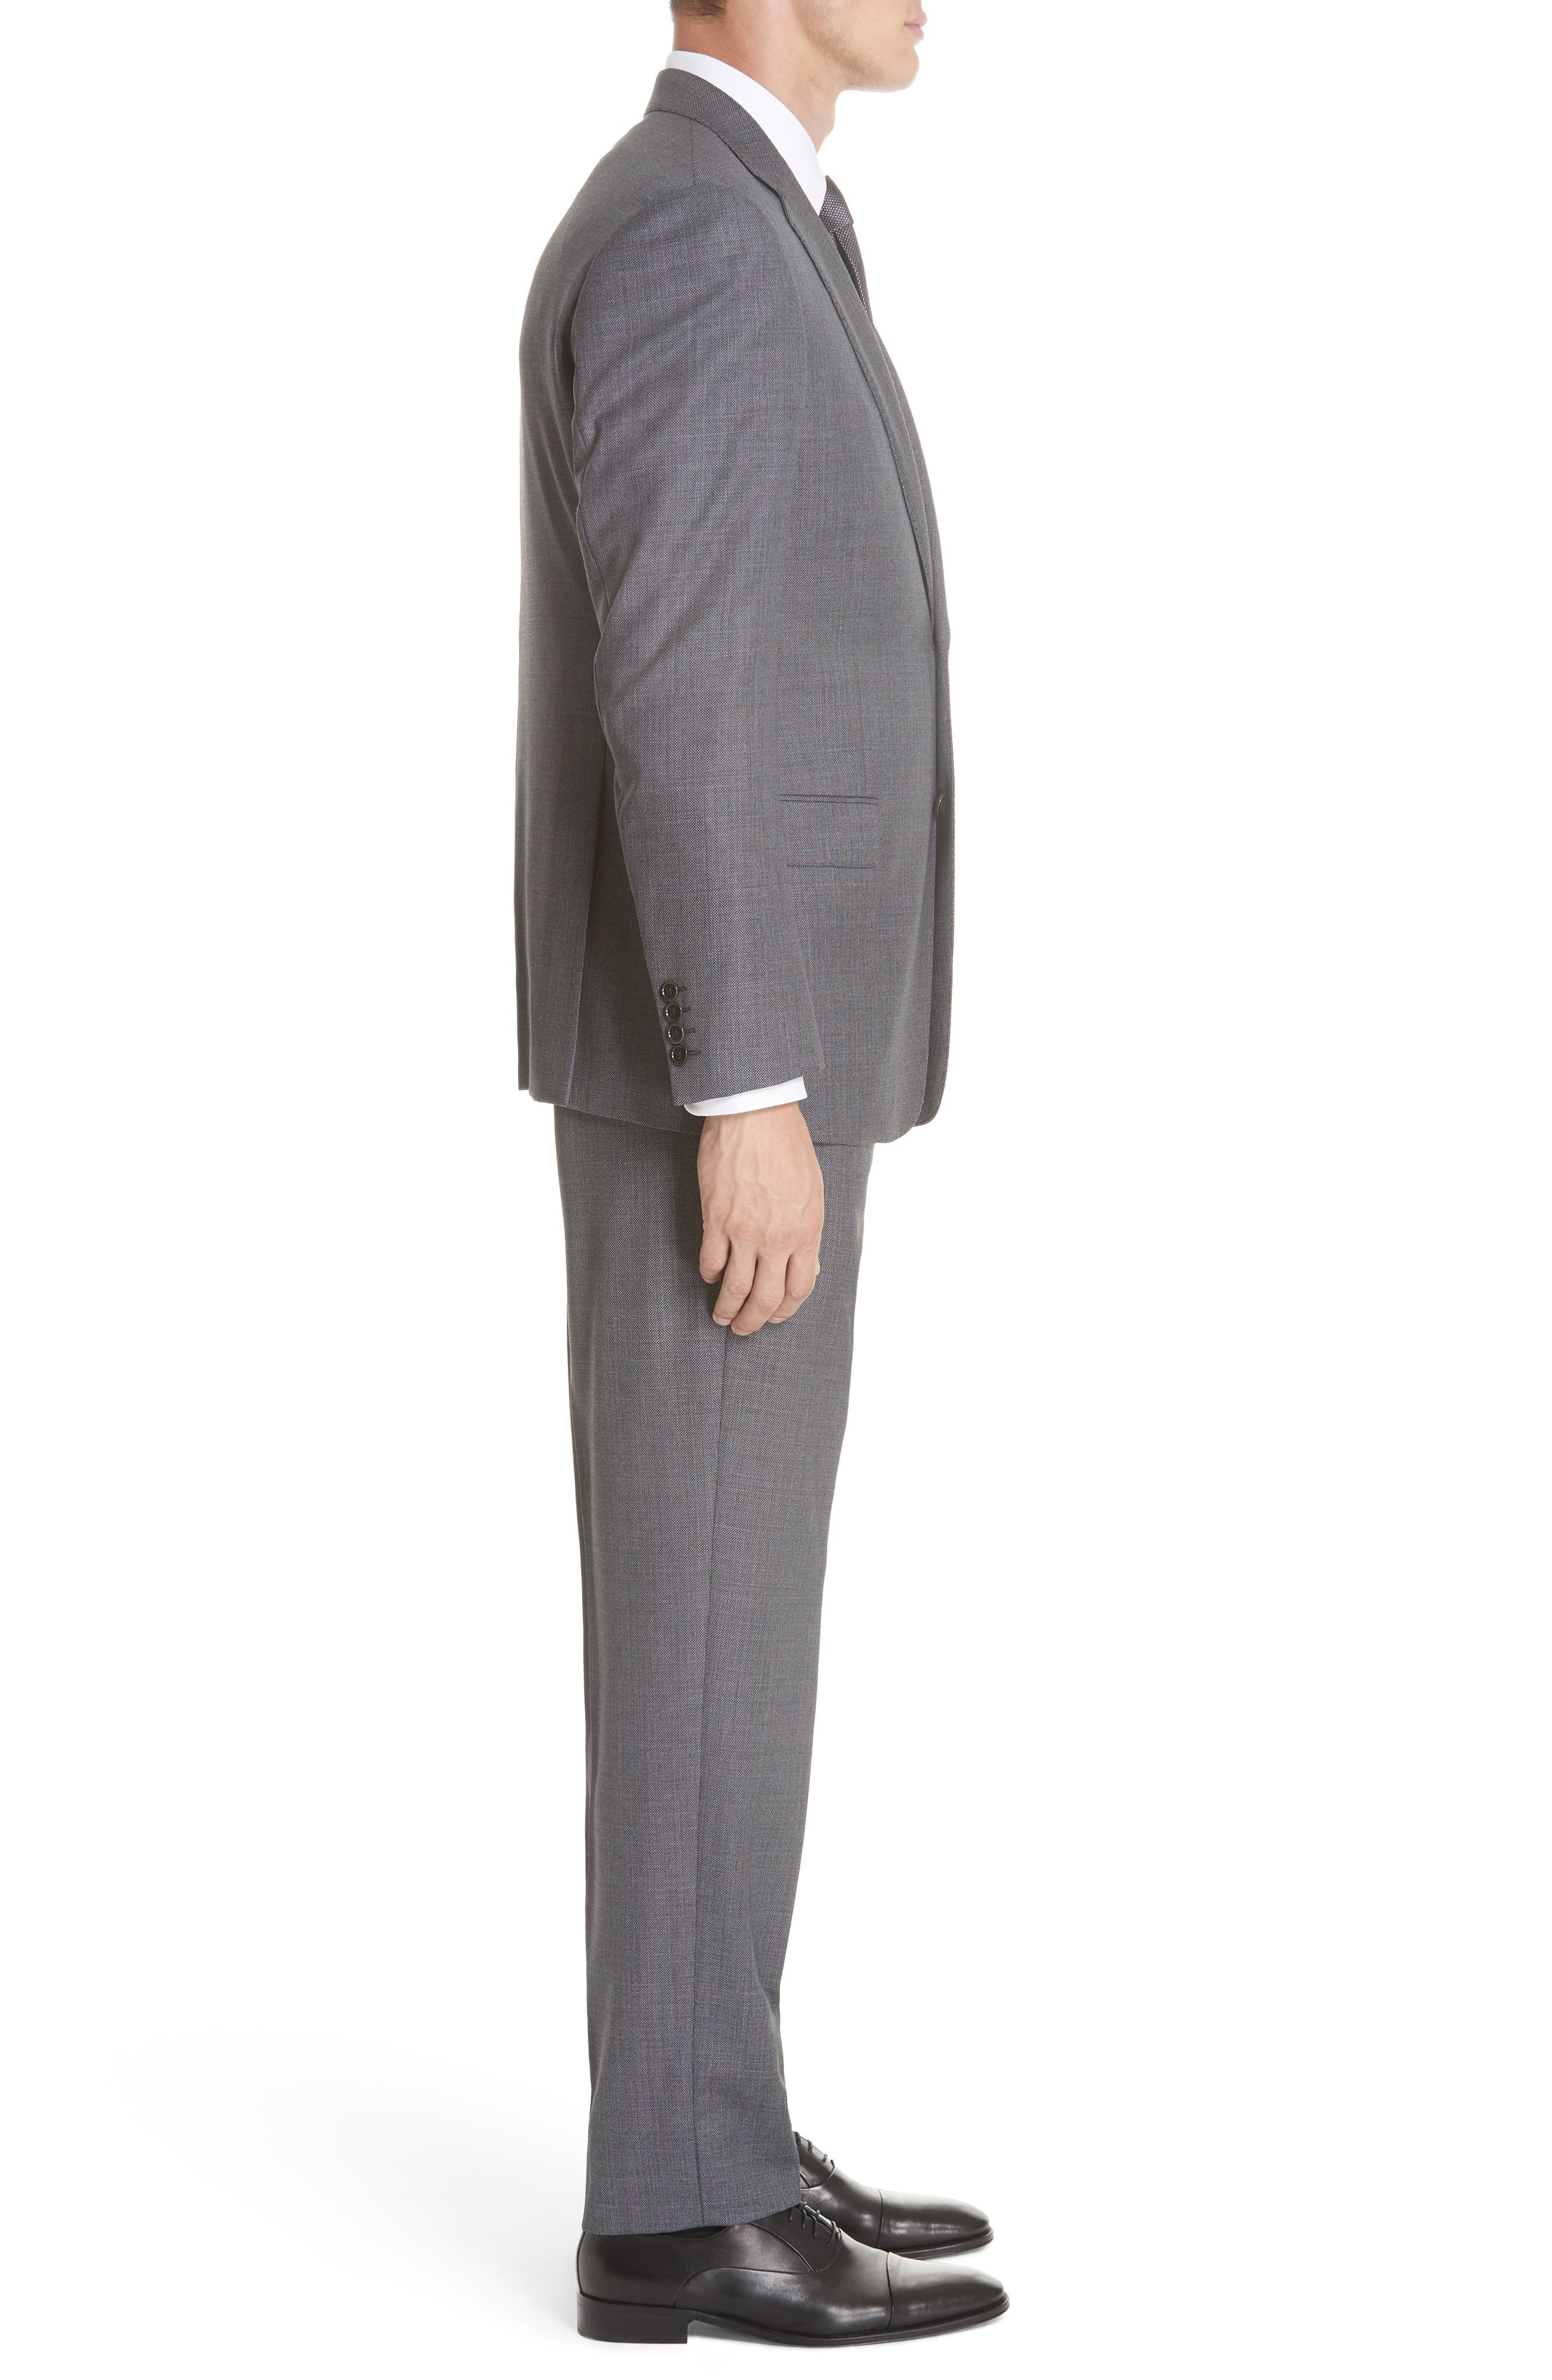 G-Line Trim Fit Bird's Eye Wool Suit,                             Alternate thumbnail 3, color,                             GREY/ LIGHT BLUE